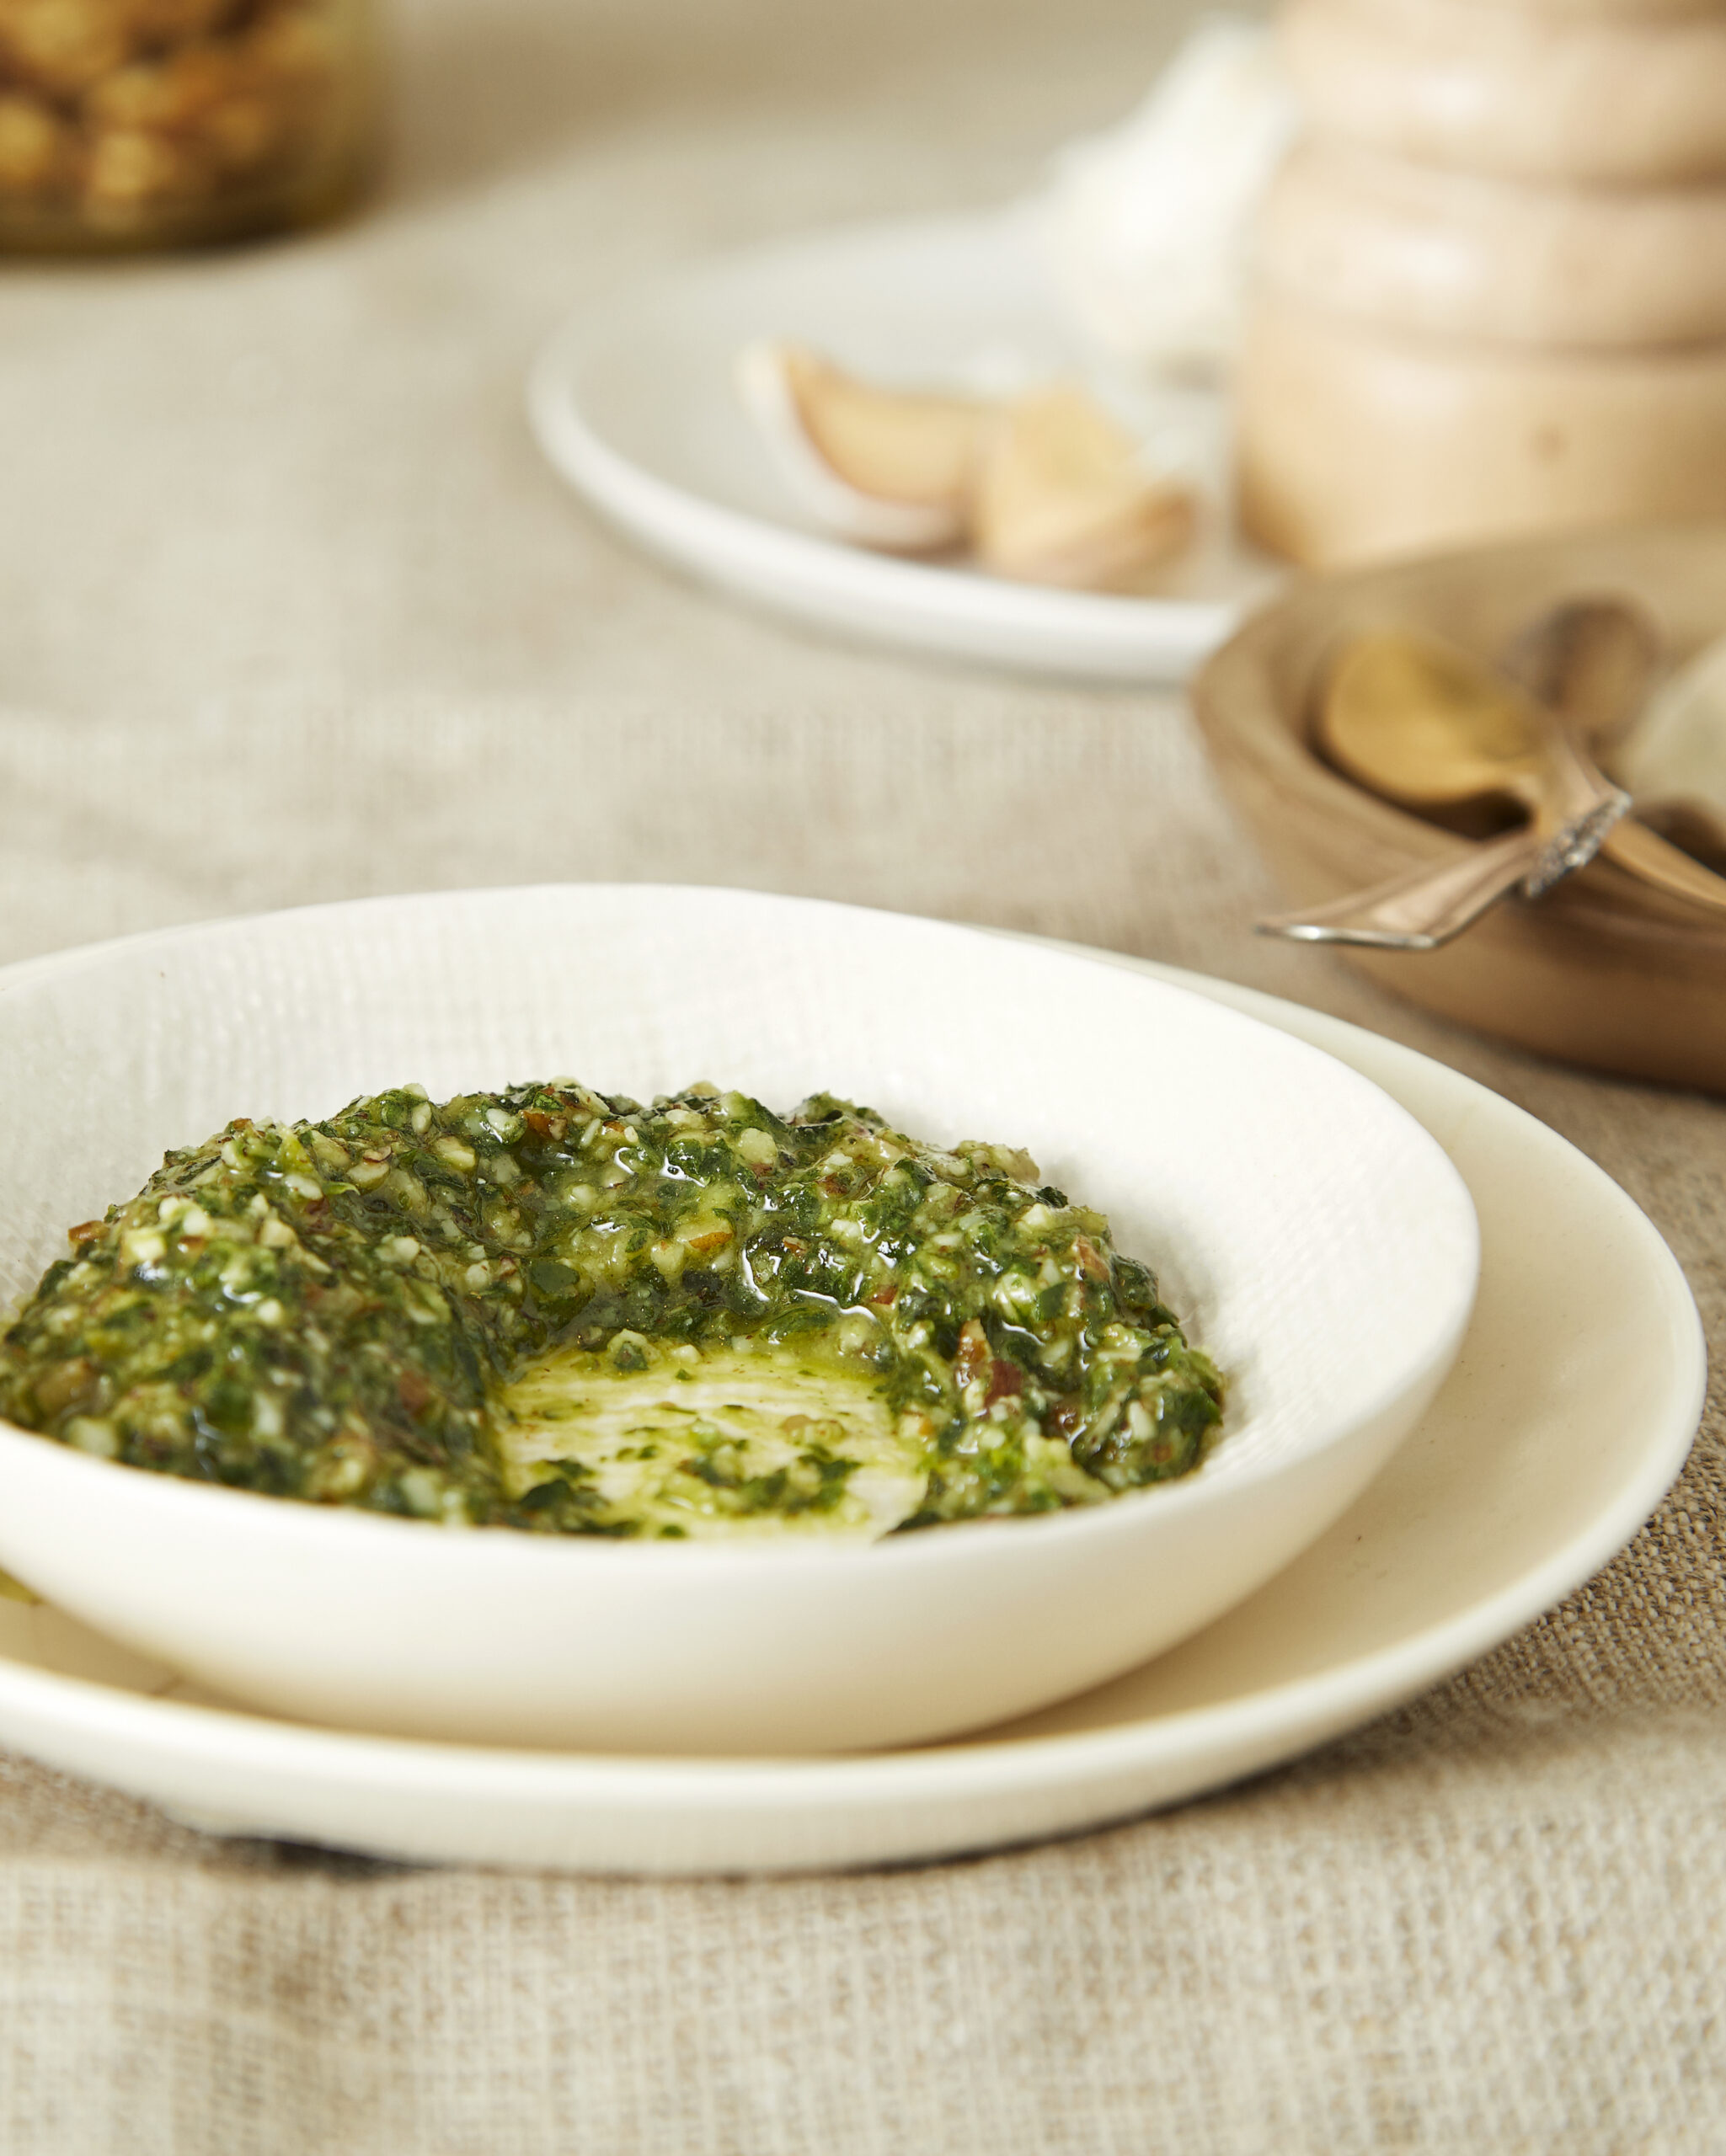 At-home pesto recipe and instructions